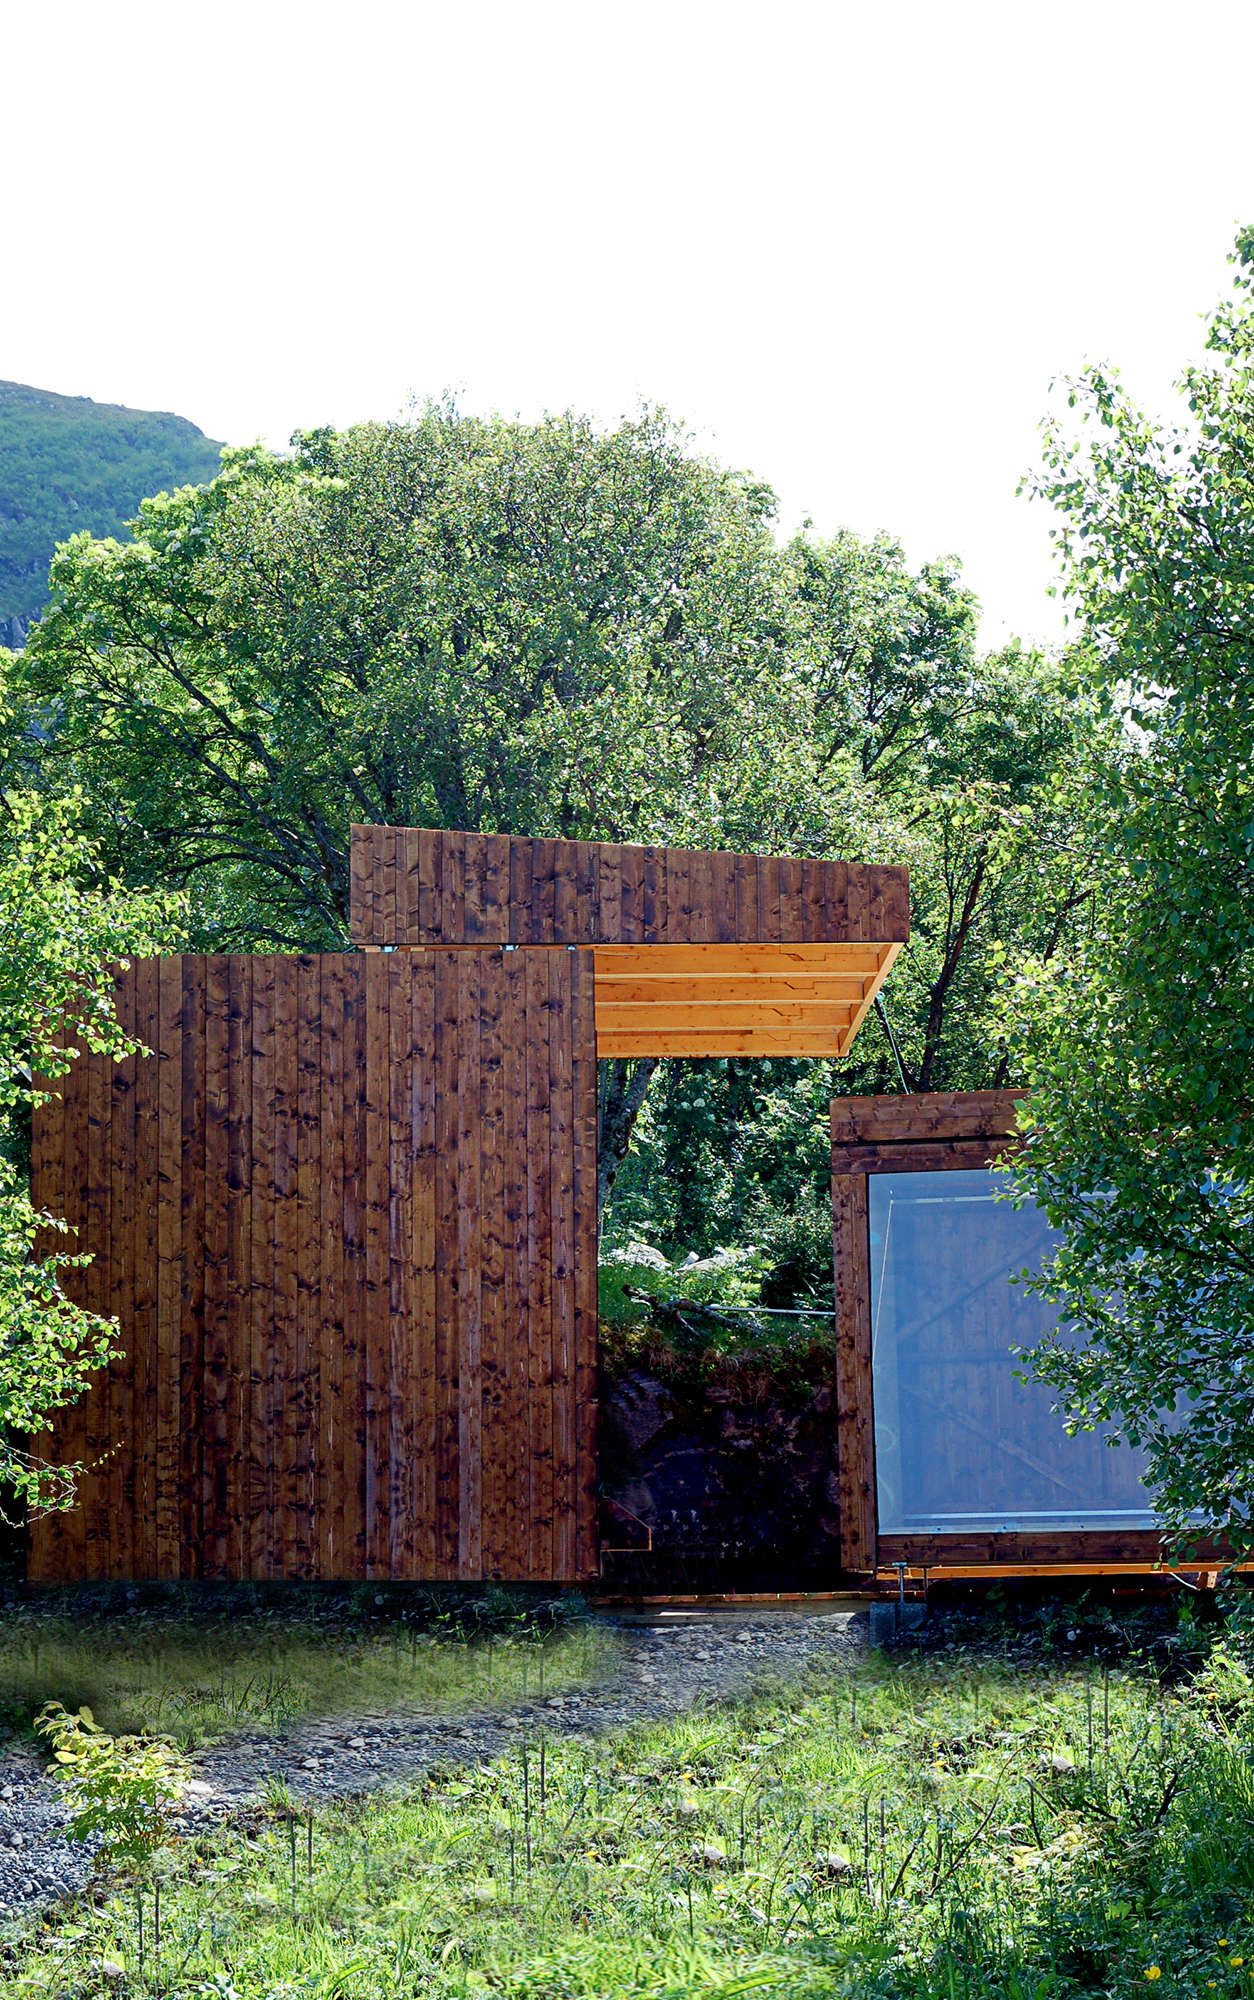 ^ Outbuilding of the Week: See-hrough Shed on a Picturesque ...